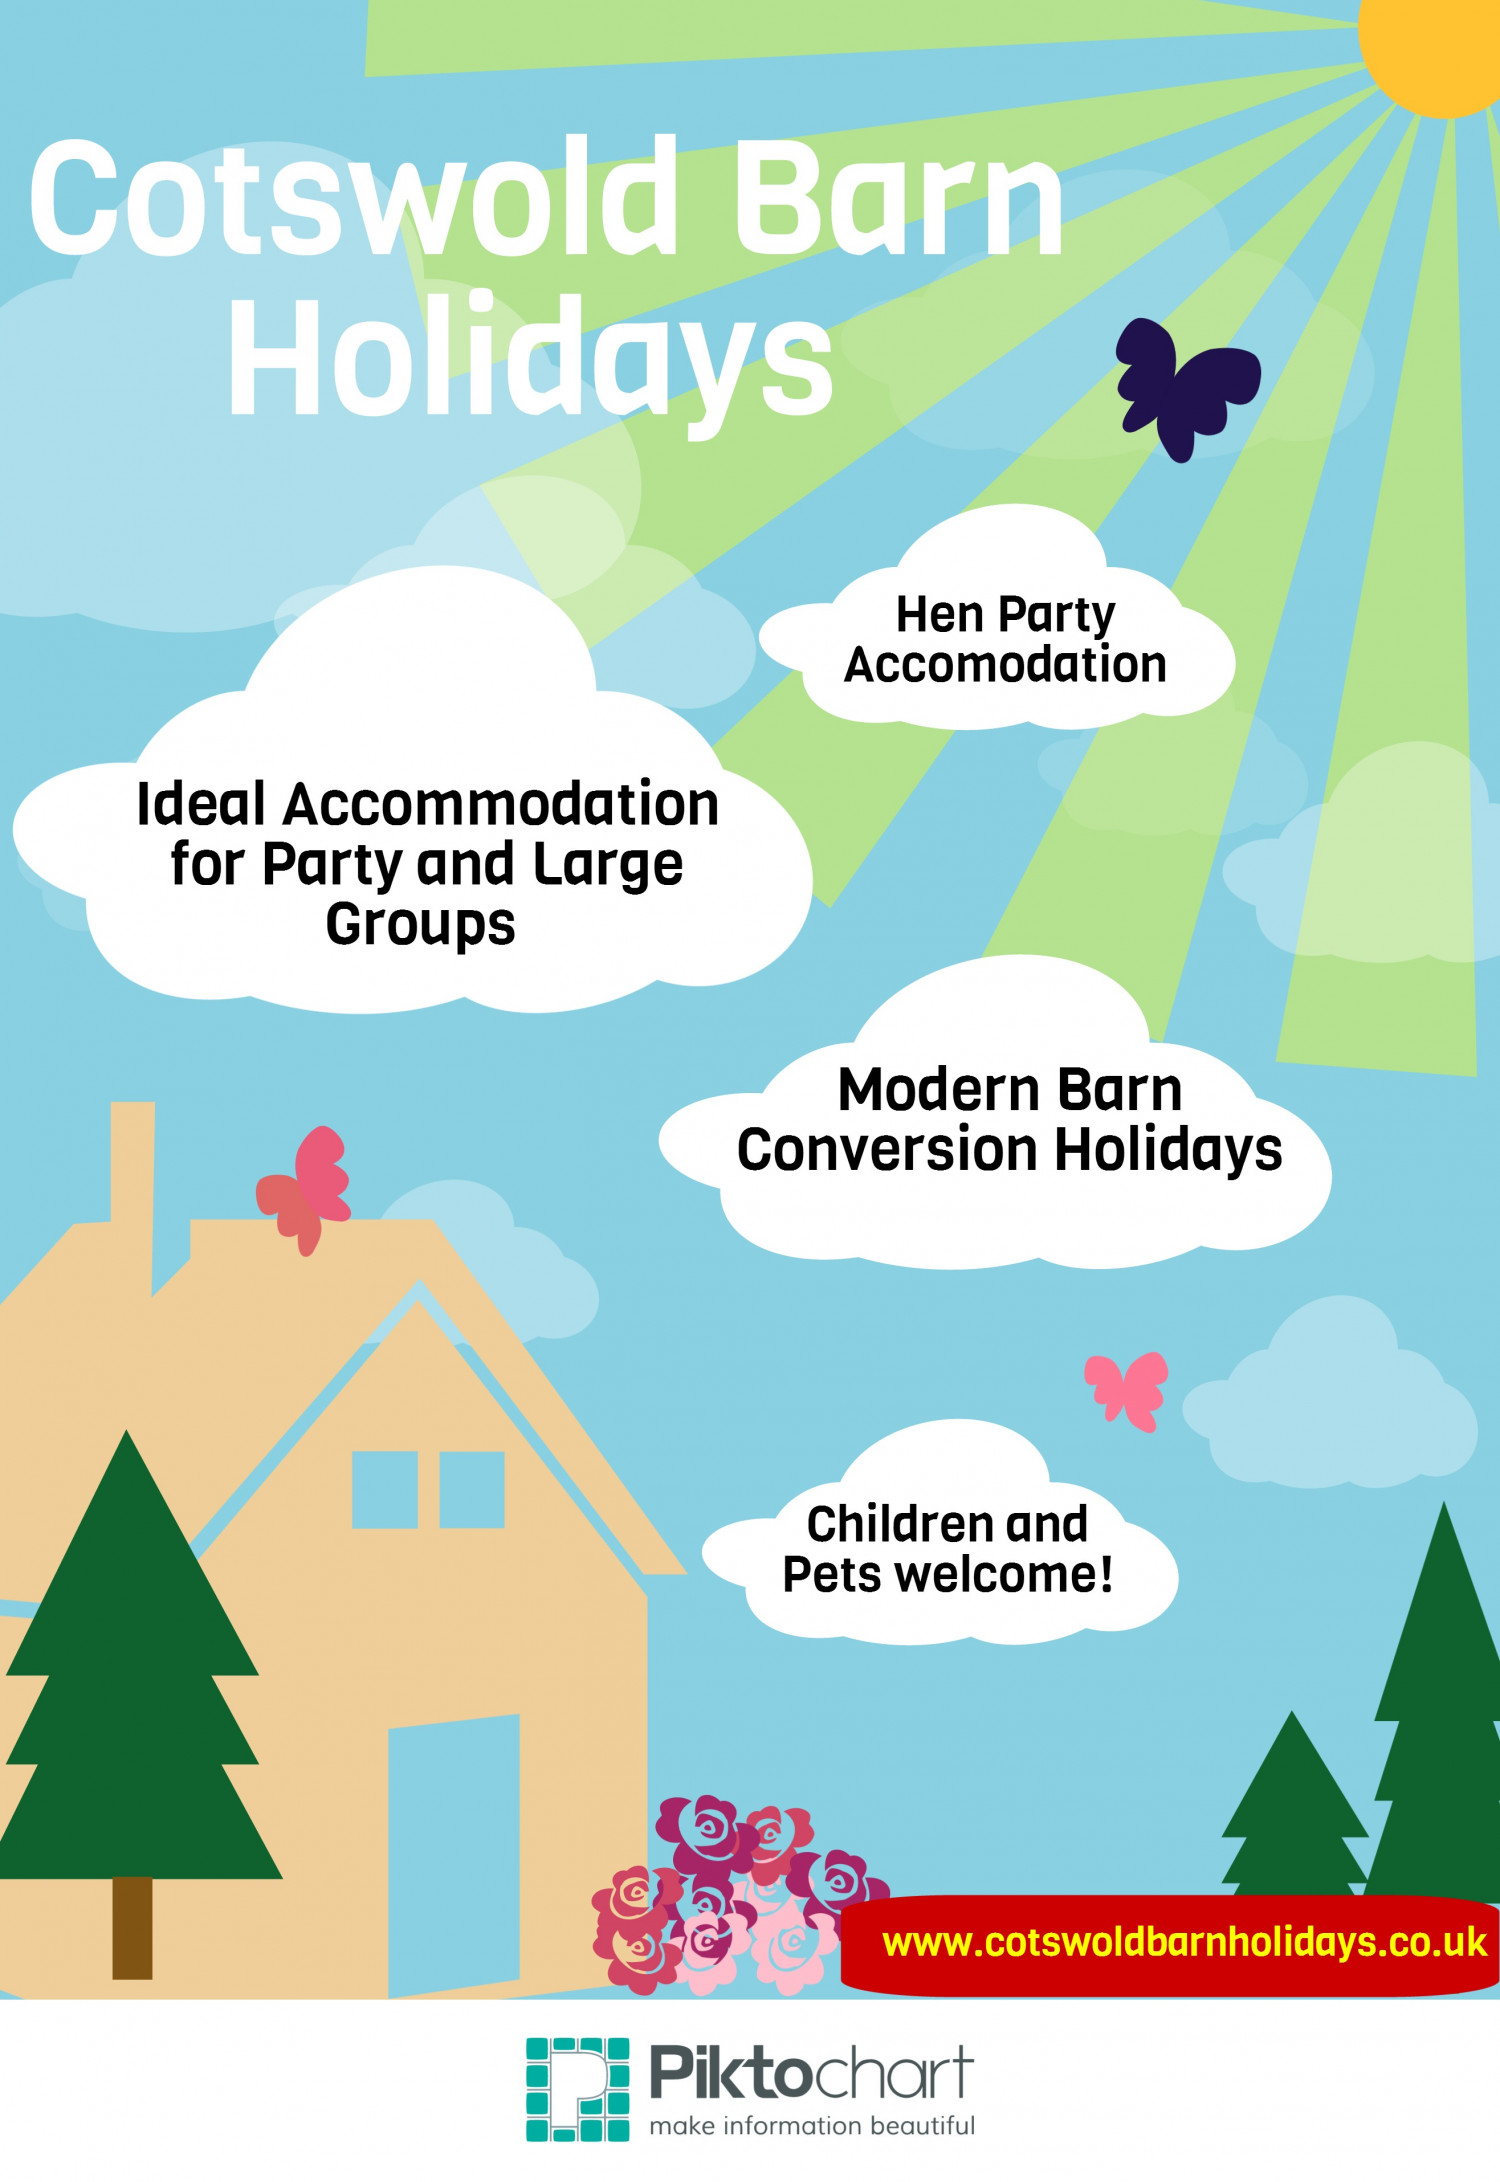 Cotswold Barn Holidays - Group Accomodation Infographic